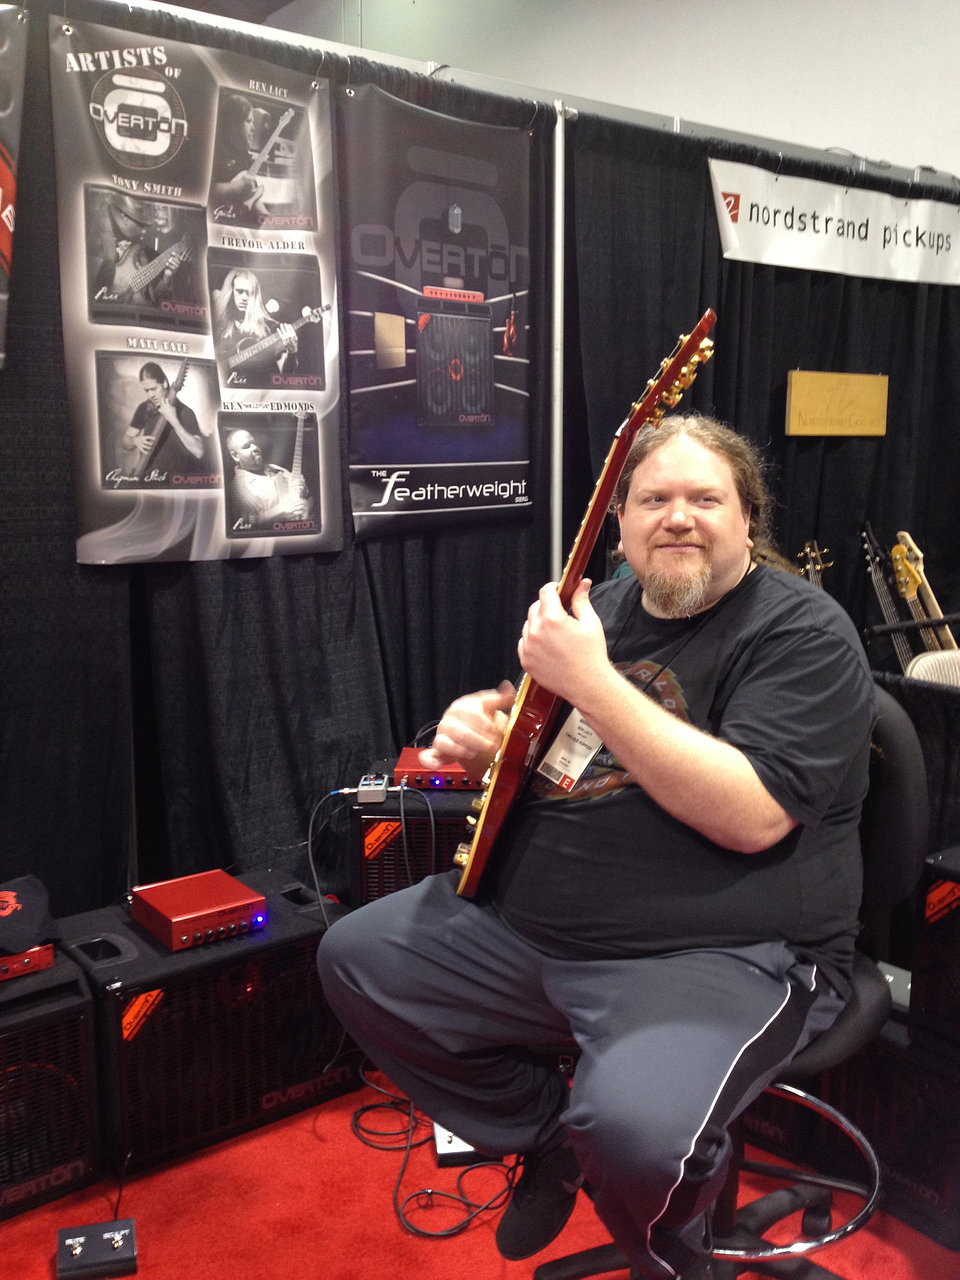 Ben at the Overton Booth